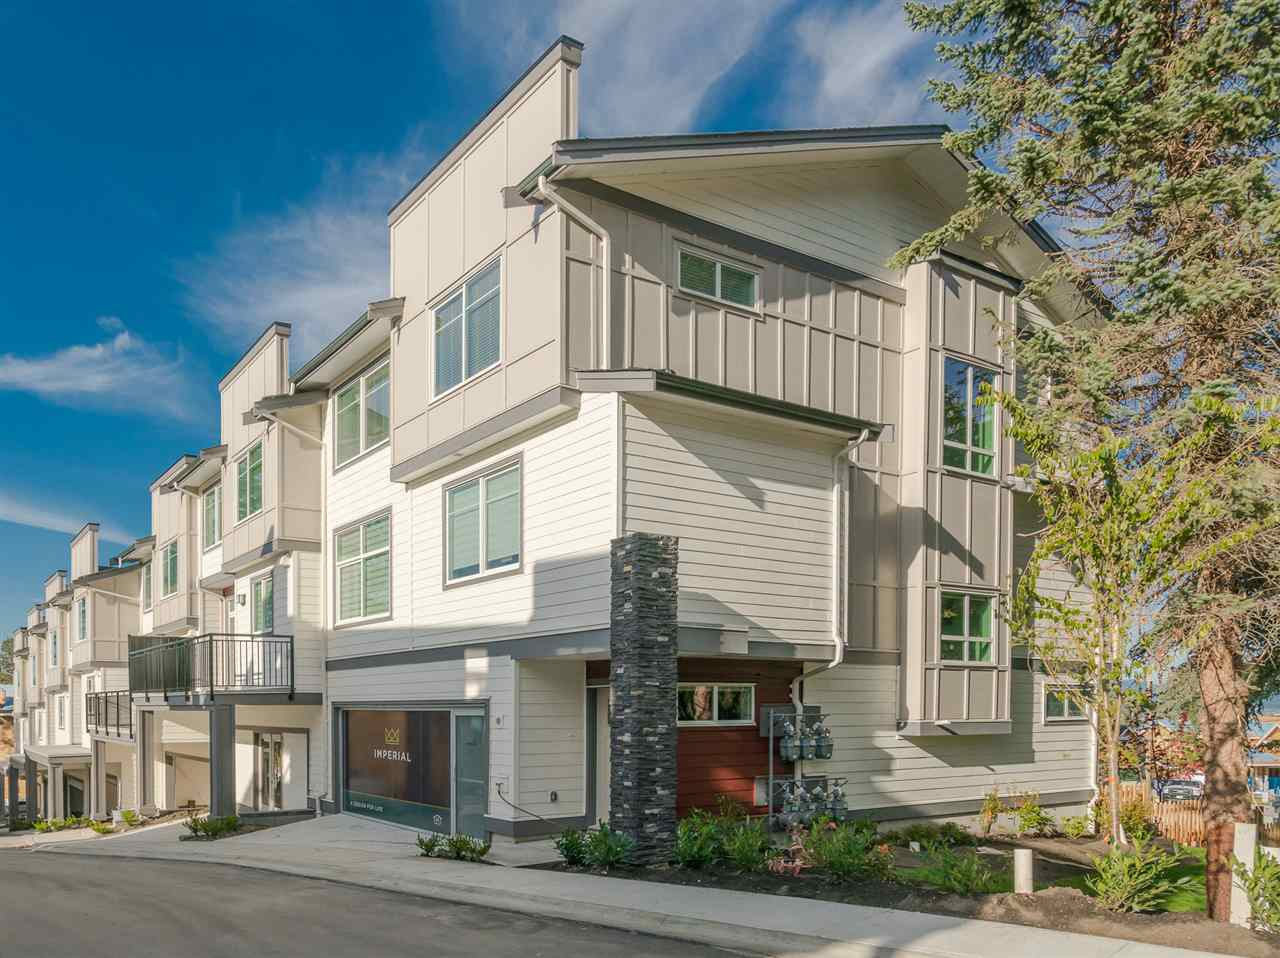 "Main Photo: 3 15633 MOUNTAIN VIEW Drive in Surrey: Grandview Surrey Townhouse for sale in ""Imperial"" (South Surrey White Rock)  : MLS® # R2221268"